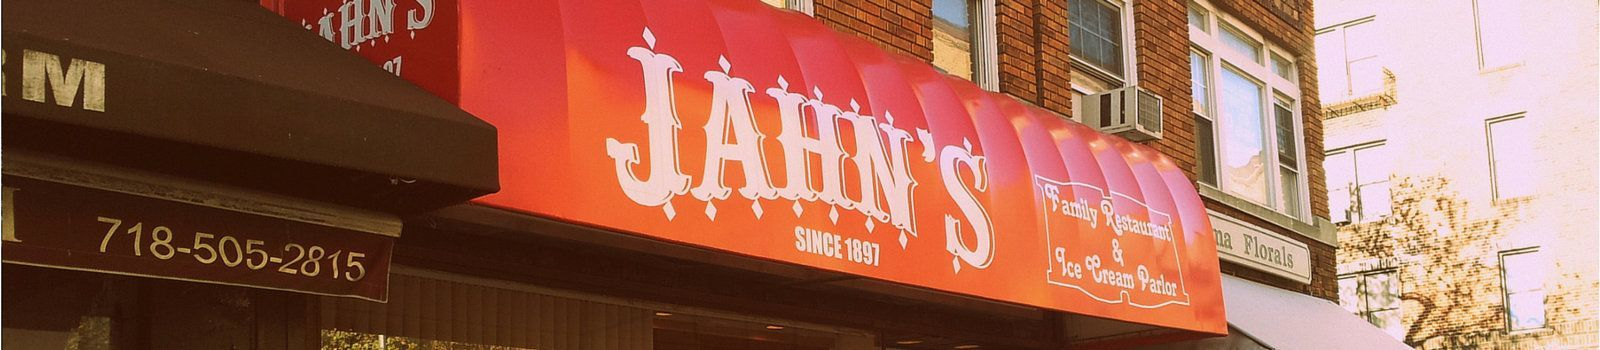 Jahns Diner Jackson Heights Header